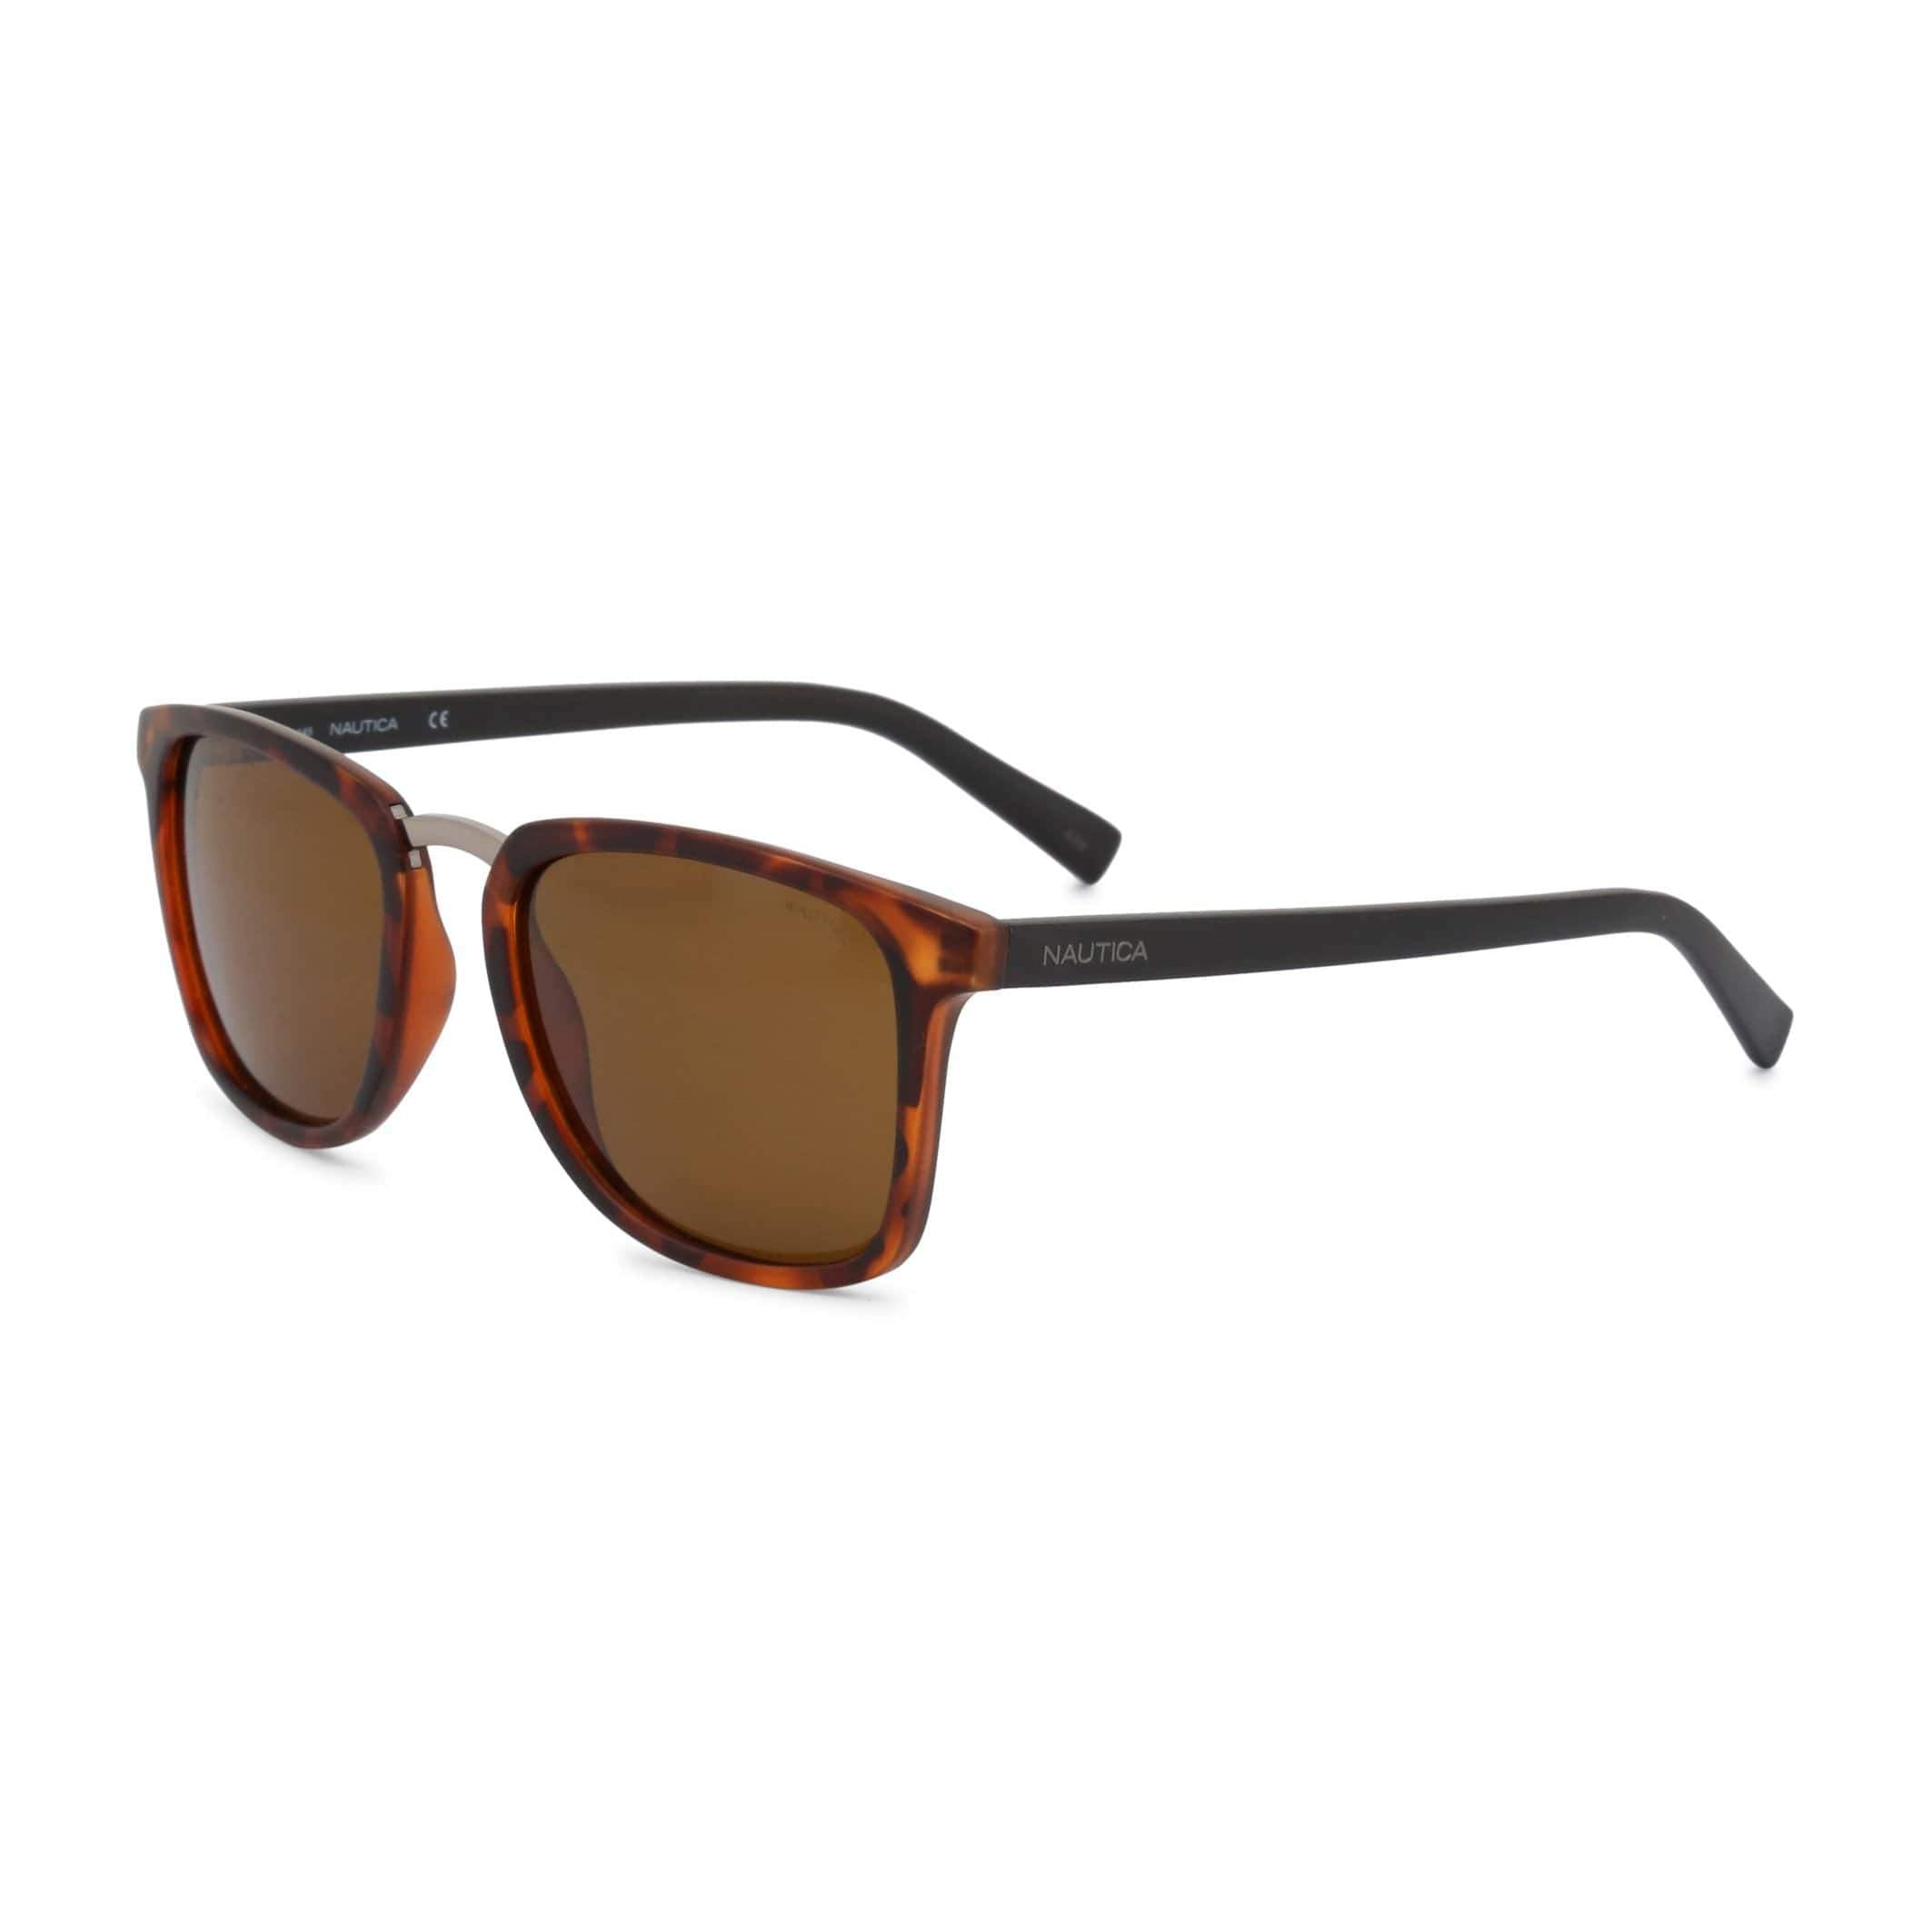 Nautica Accessories Sunglasses brown / NOSIZE Nautica - 33072_N3622SP